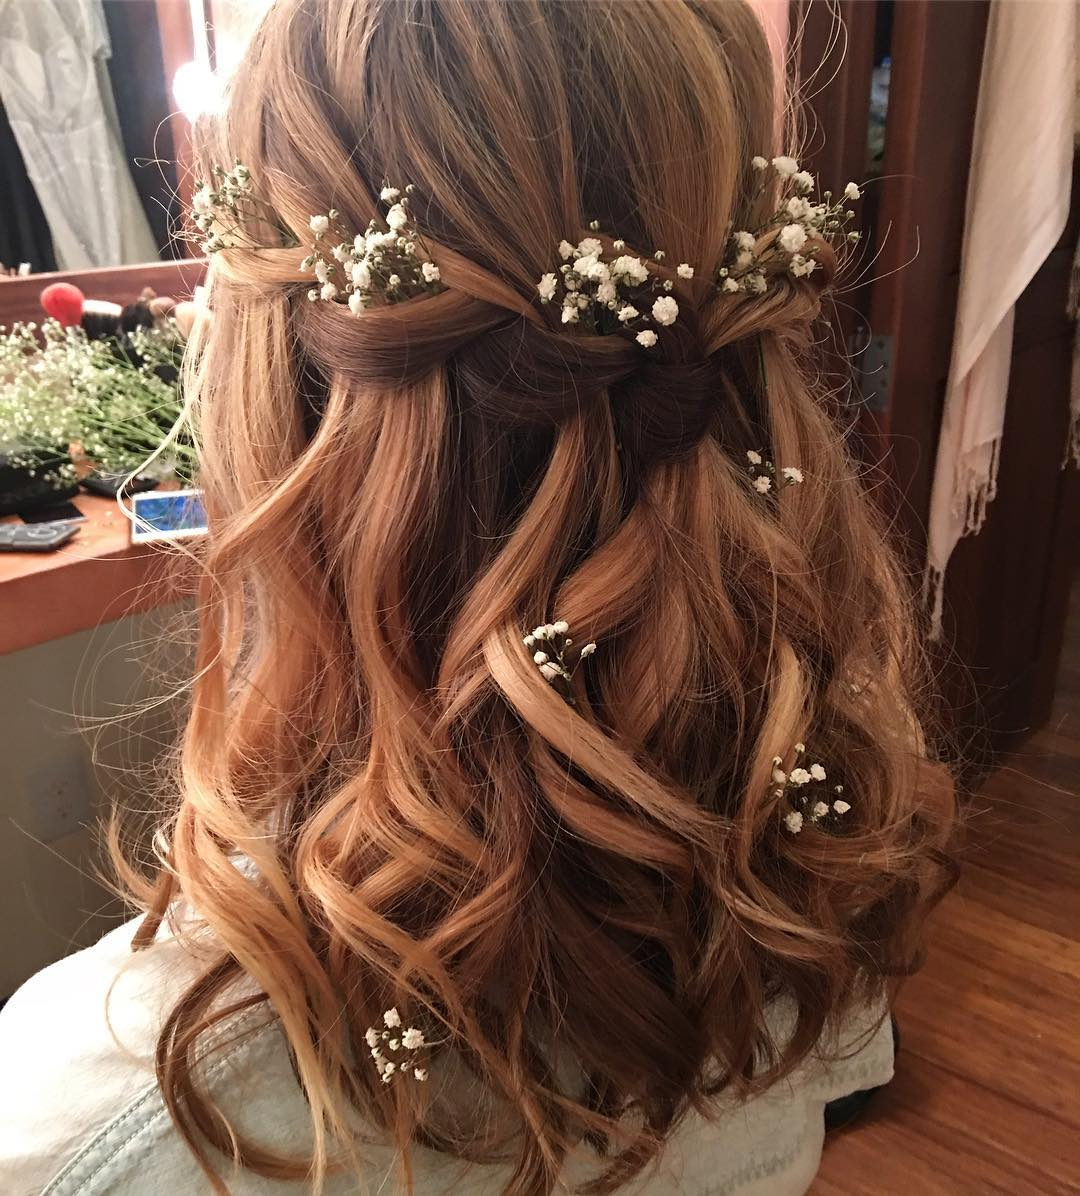 Wedding Hairstyles Ideas: 10 Lavish Wedding Hairstyles For Long Hair